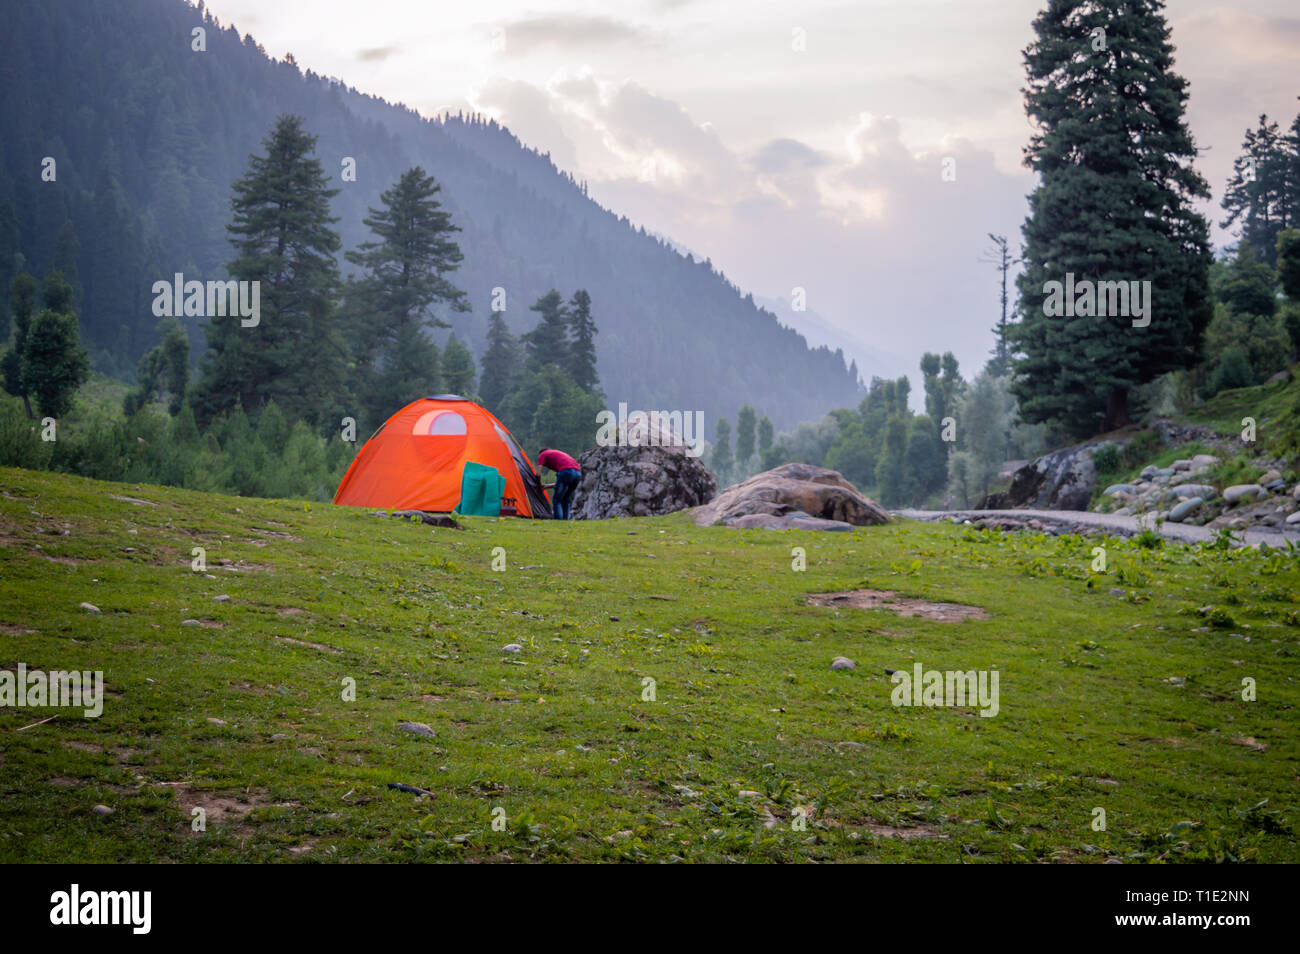 A person entering an Orange coloured tent set up for camping in the Himalayan region of Kashmir - Stock Image